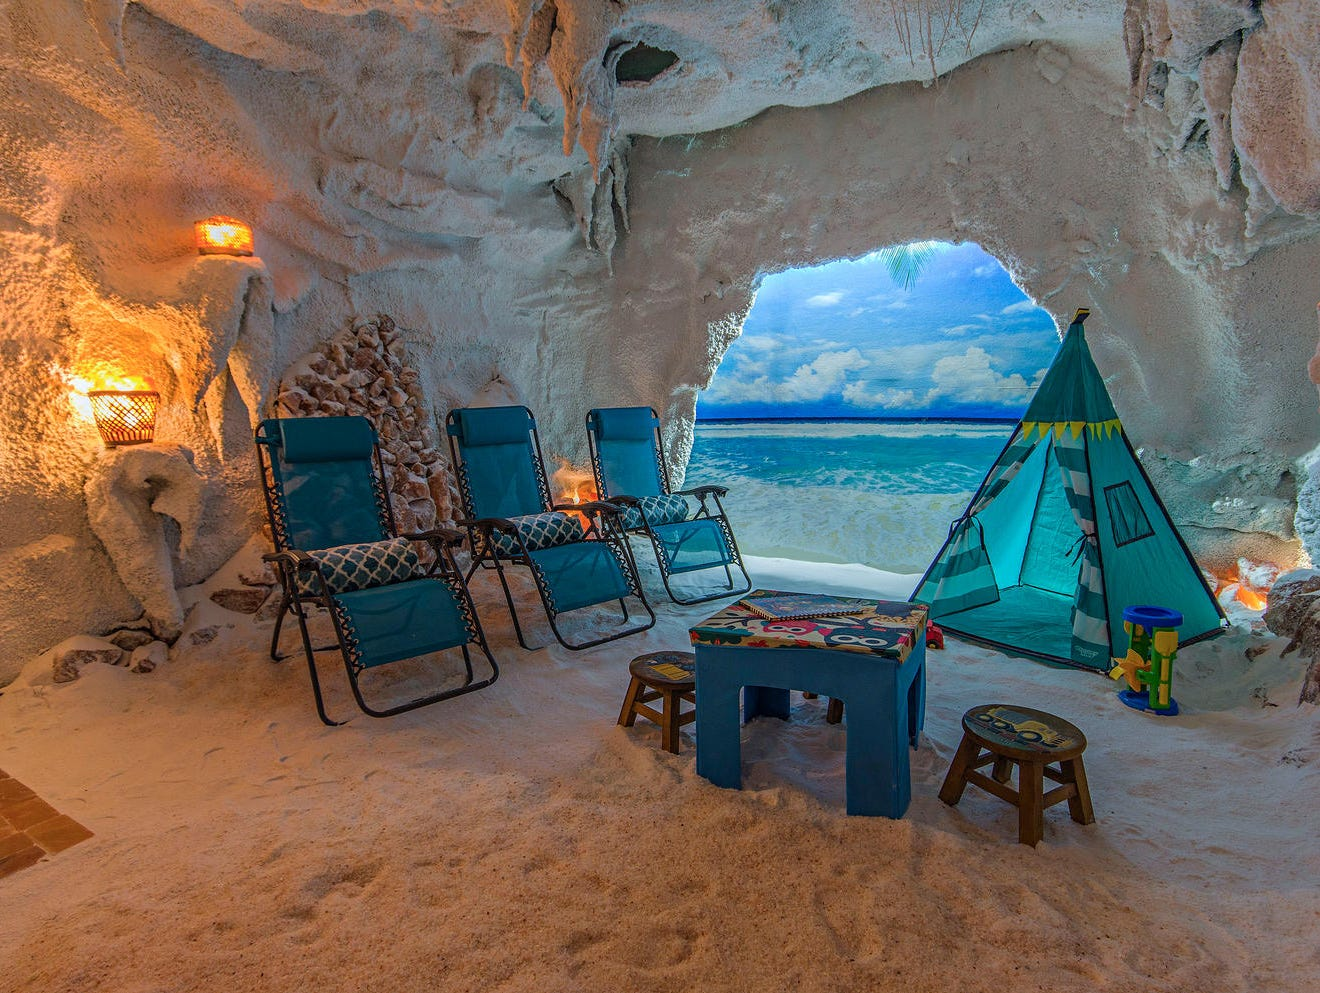 The children's salt grotto at Salt Therapy Grotto & Spa in Naples releases salt particles in the air, designed to improve symptoms in children affected by respiratory and skin conditions.